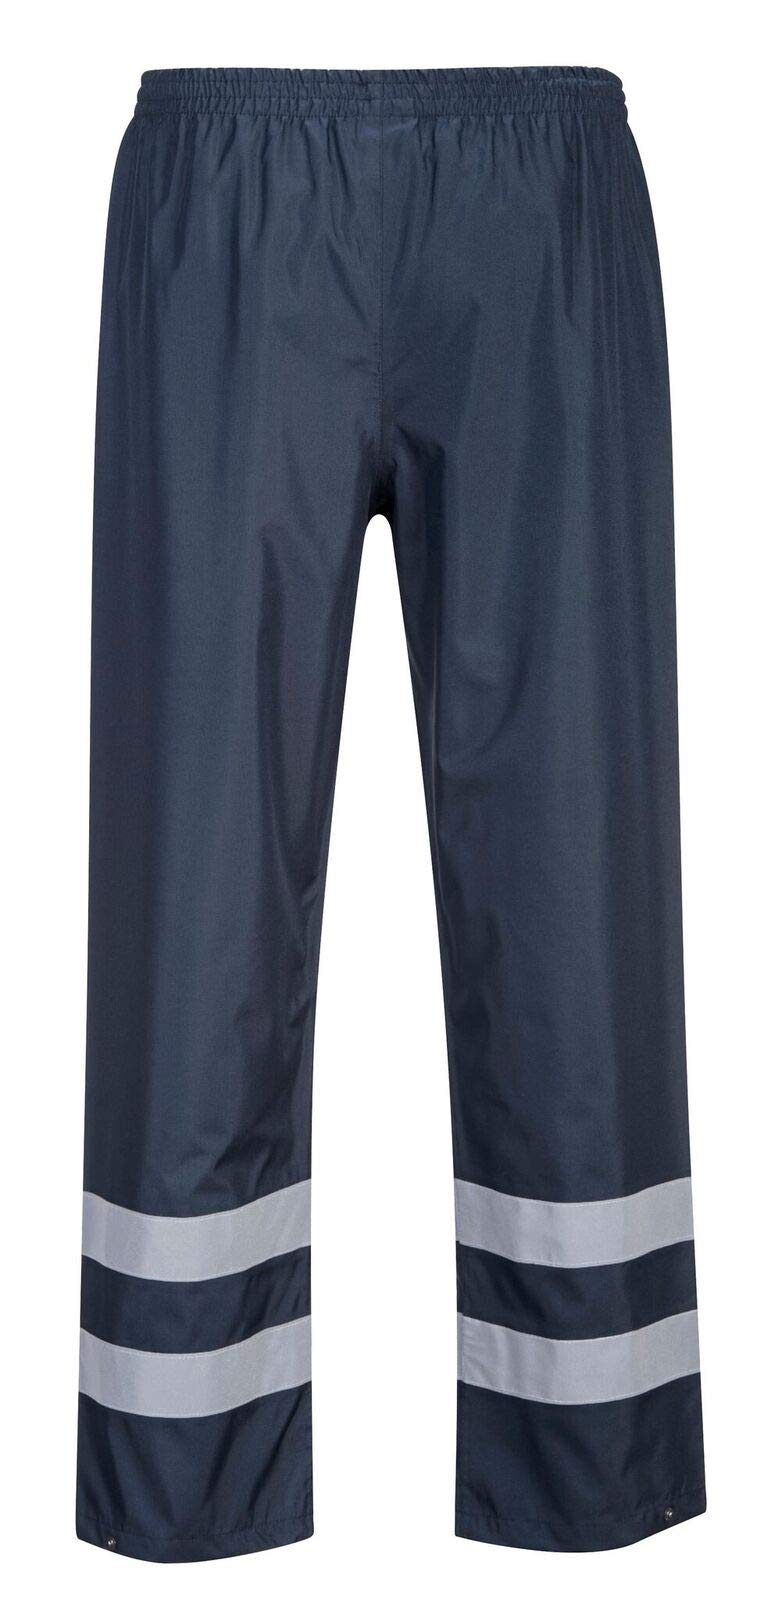 Brite Safety Work Pants - Rain Gear for Men and Women, Durable Waterproof Reflective Rain Pant (Navy,Small)